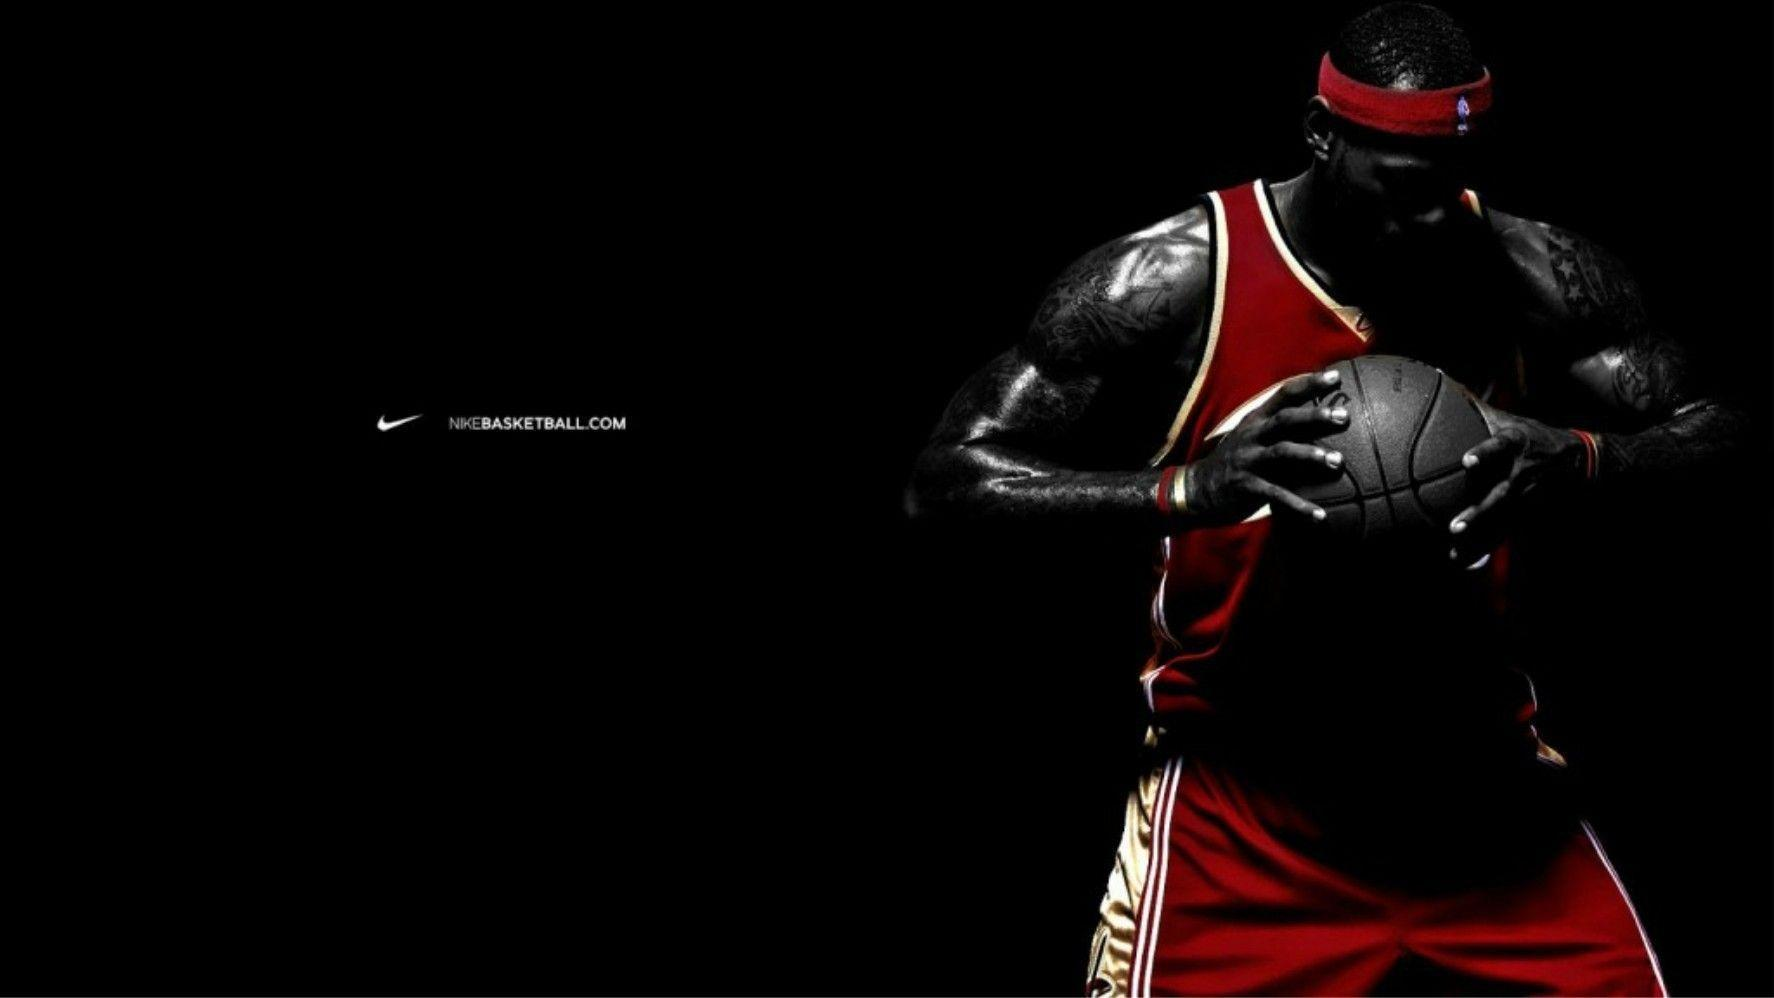 NBA Basketball Wallpapers (85+)